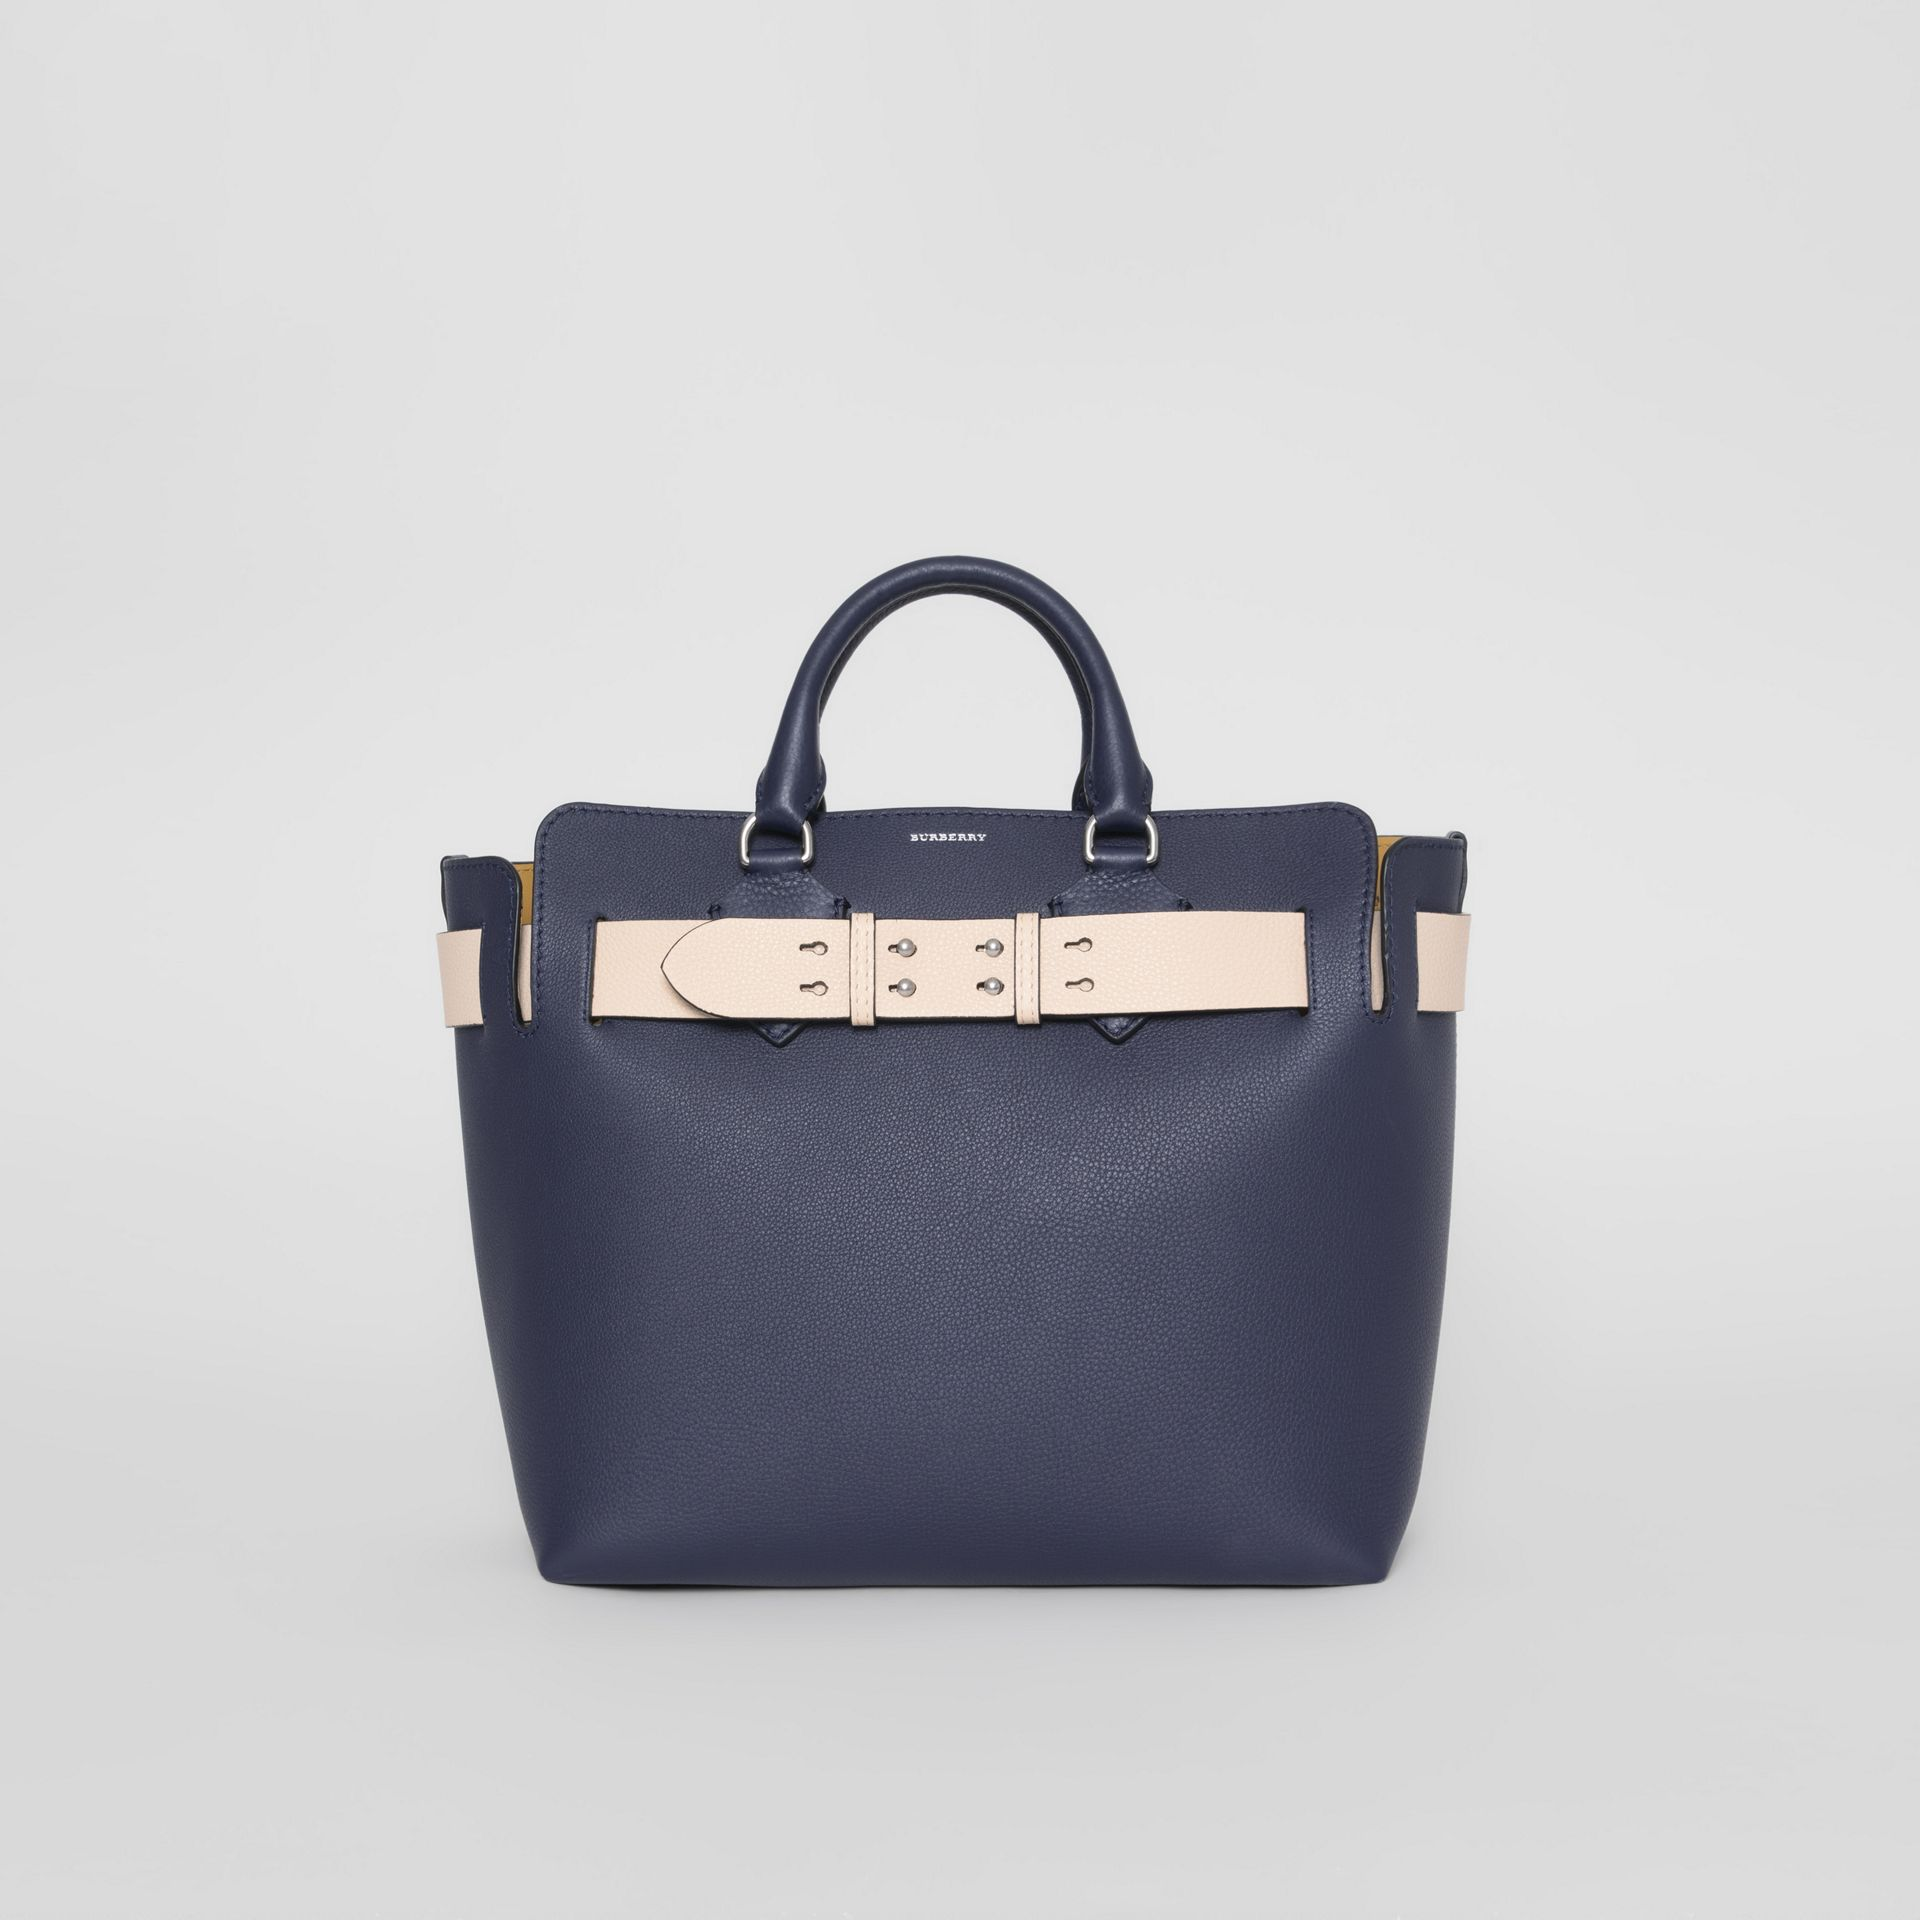 Sac The Belt moyen en cuir (Bleu Régence) - Femme | Burberry - photo de la galerie 0